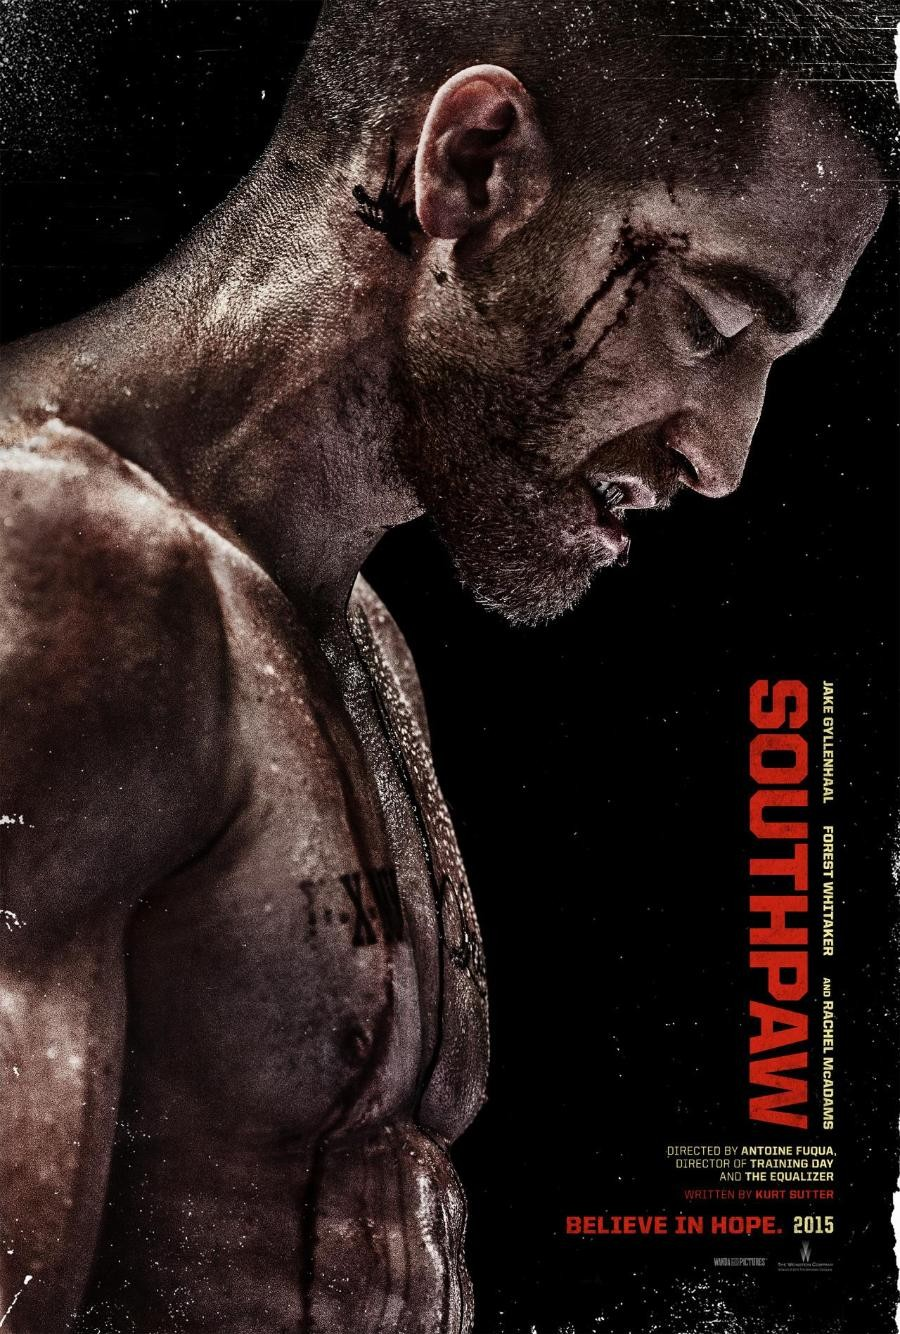 New SOUTHPAW Trailer and Posters | The Entertainment Factor